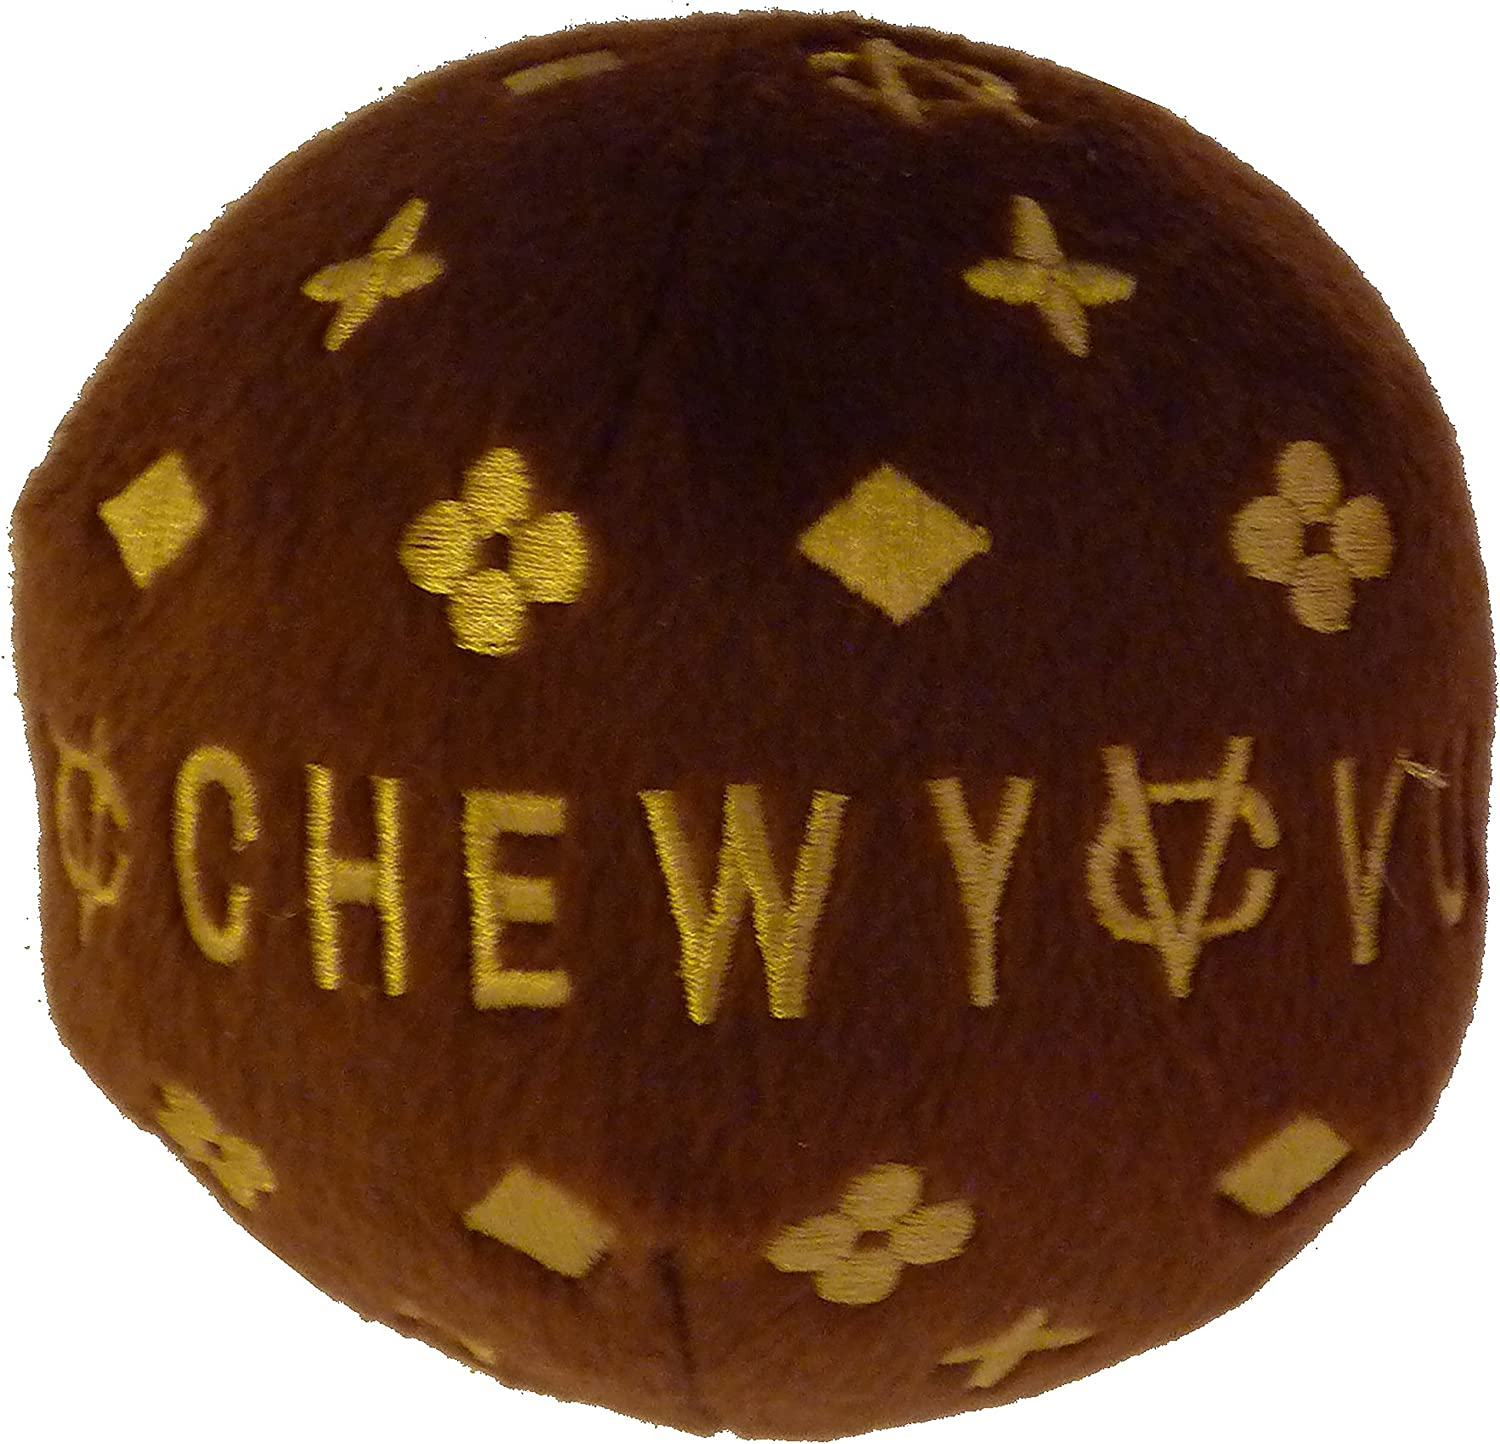 Chewy Vuiton Plush Ball Toy for Dogs (Large)